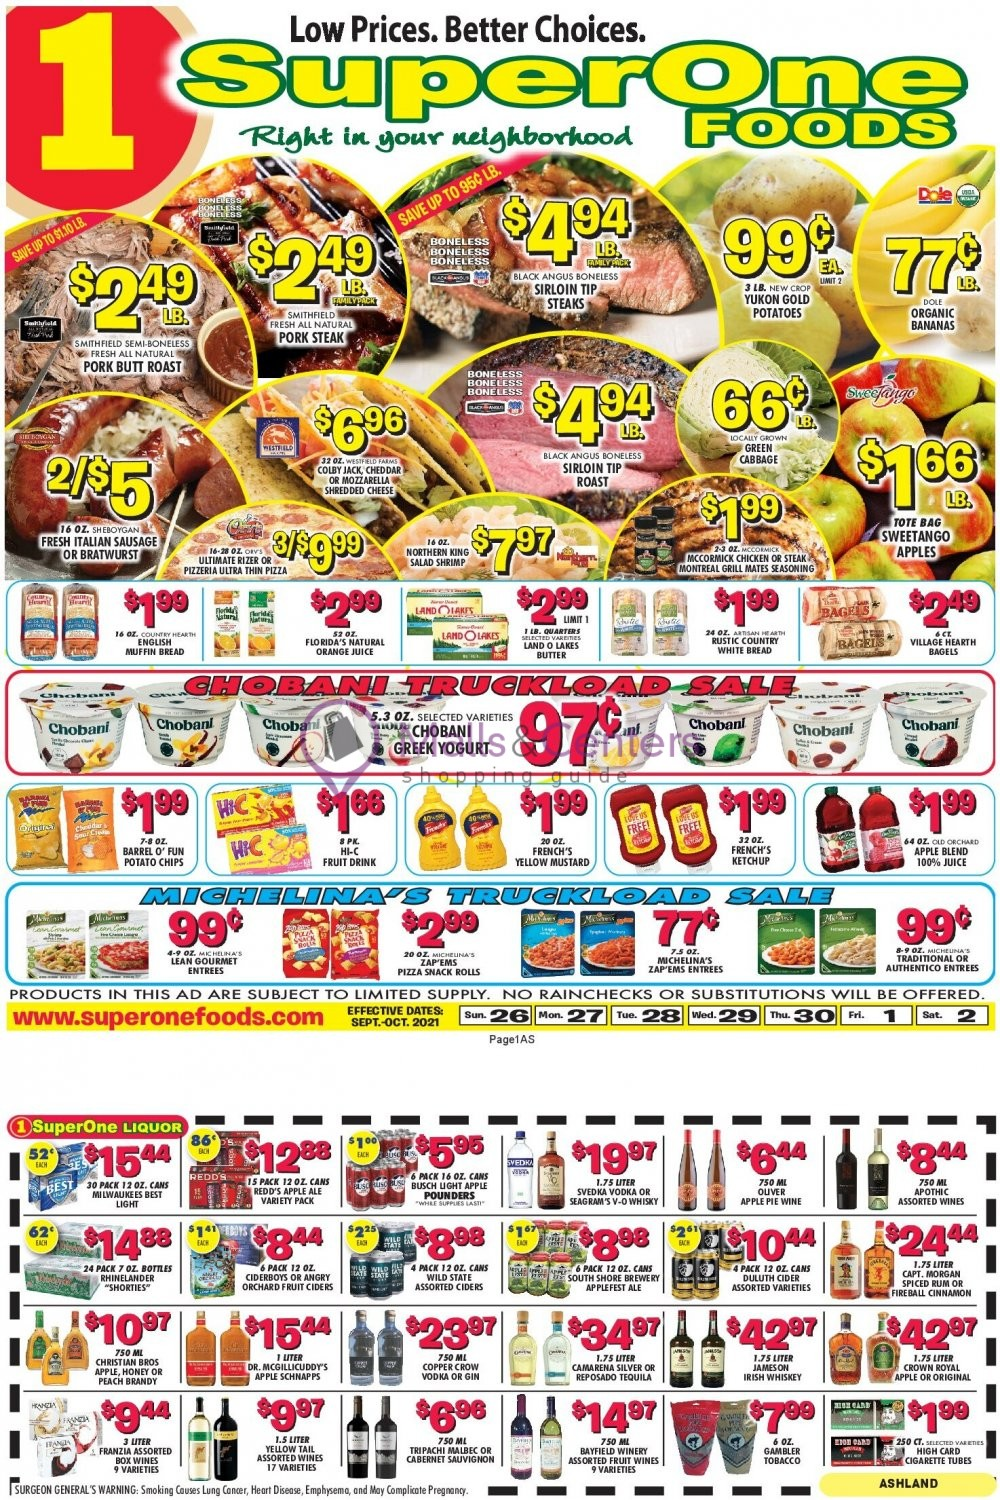 weekly ads Super One Foods - page 1 - mallscenters.com